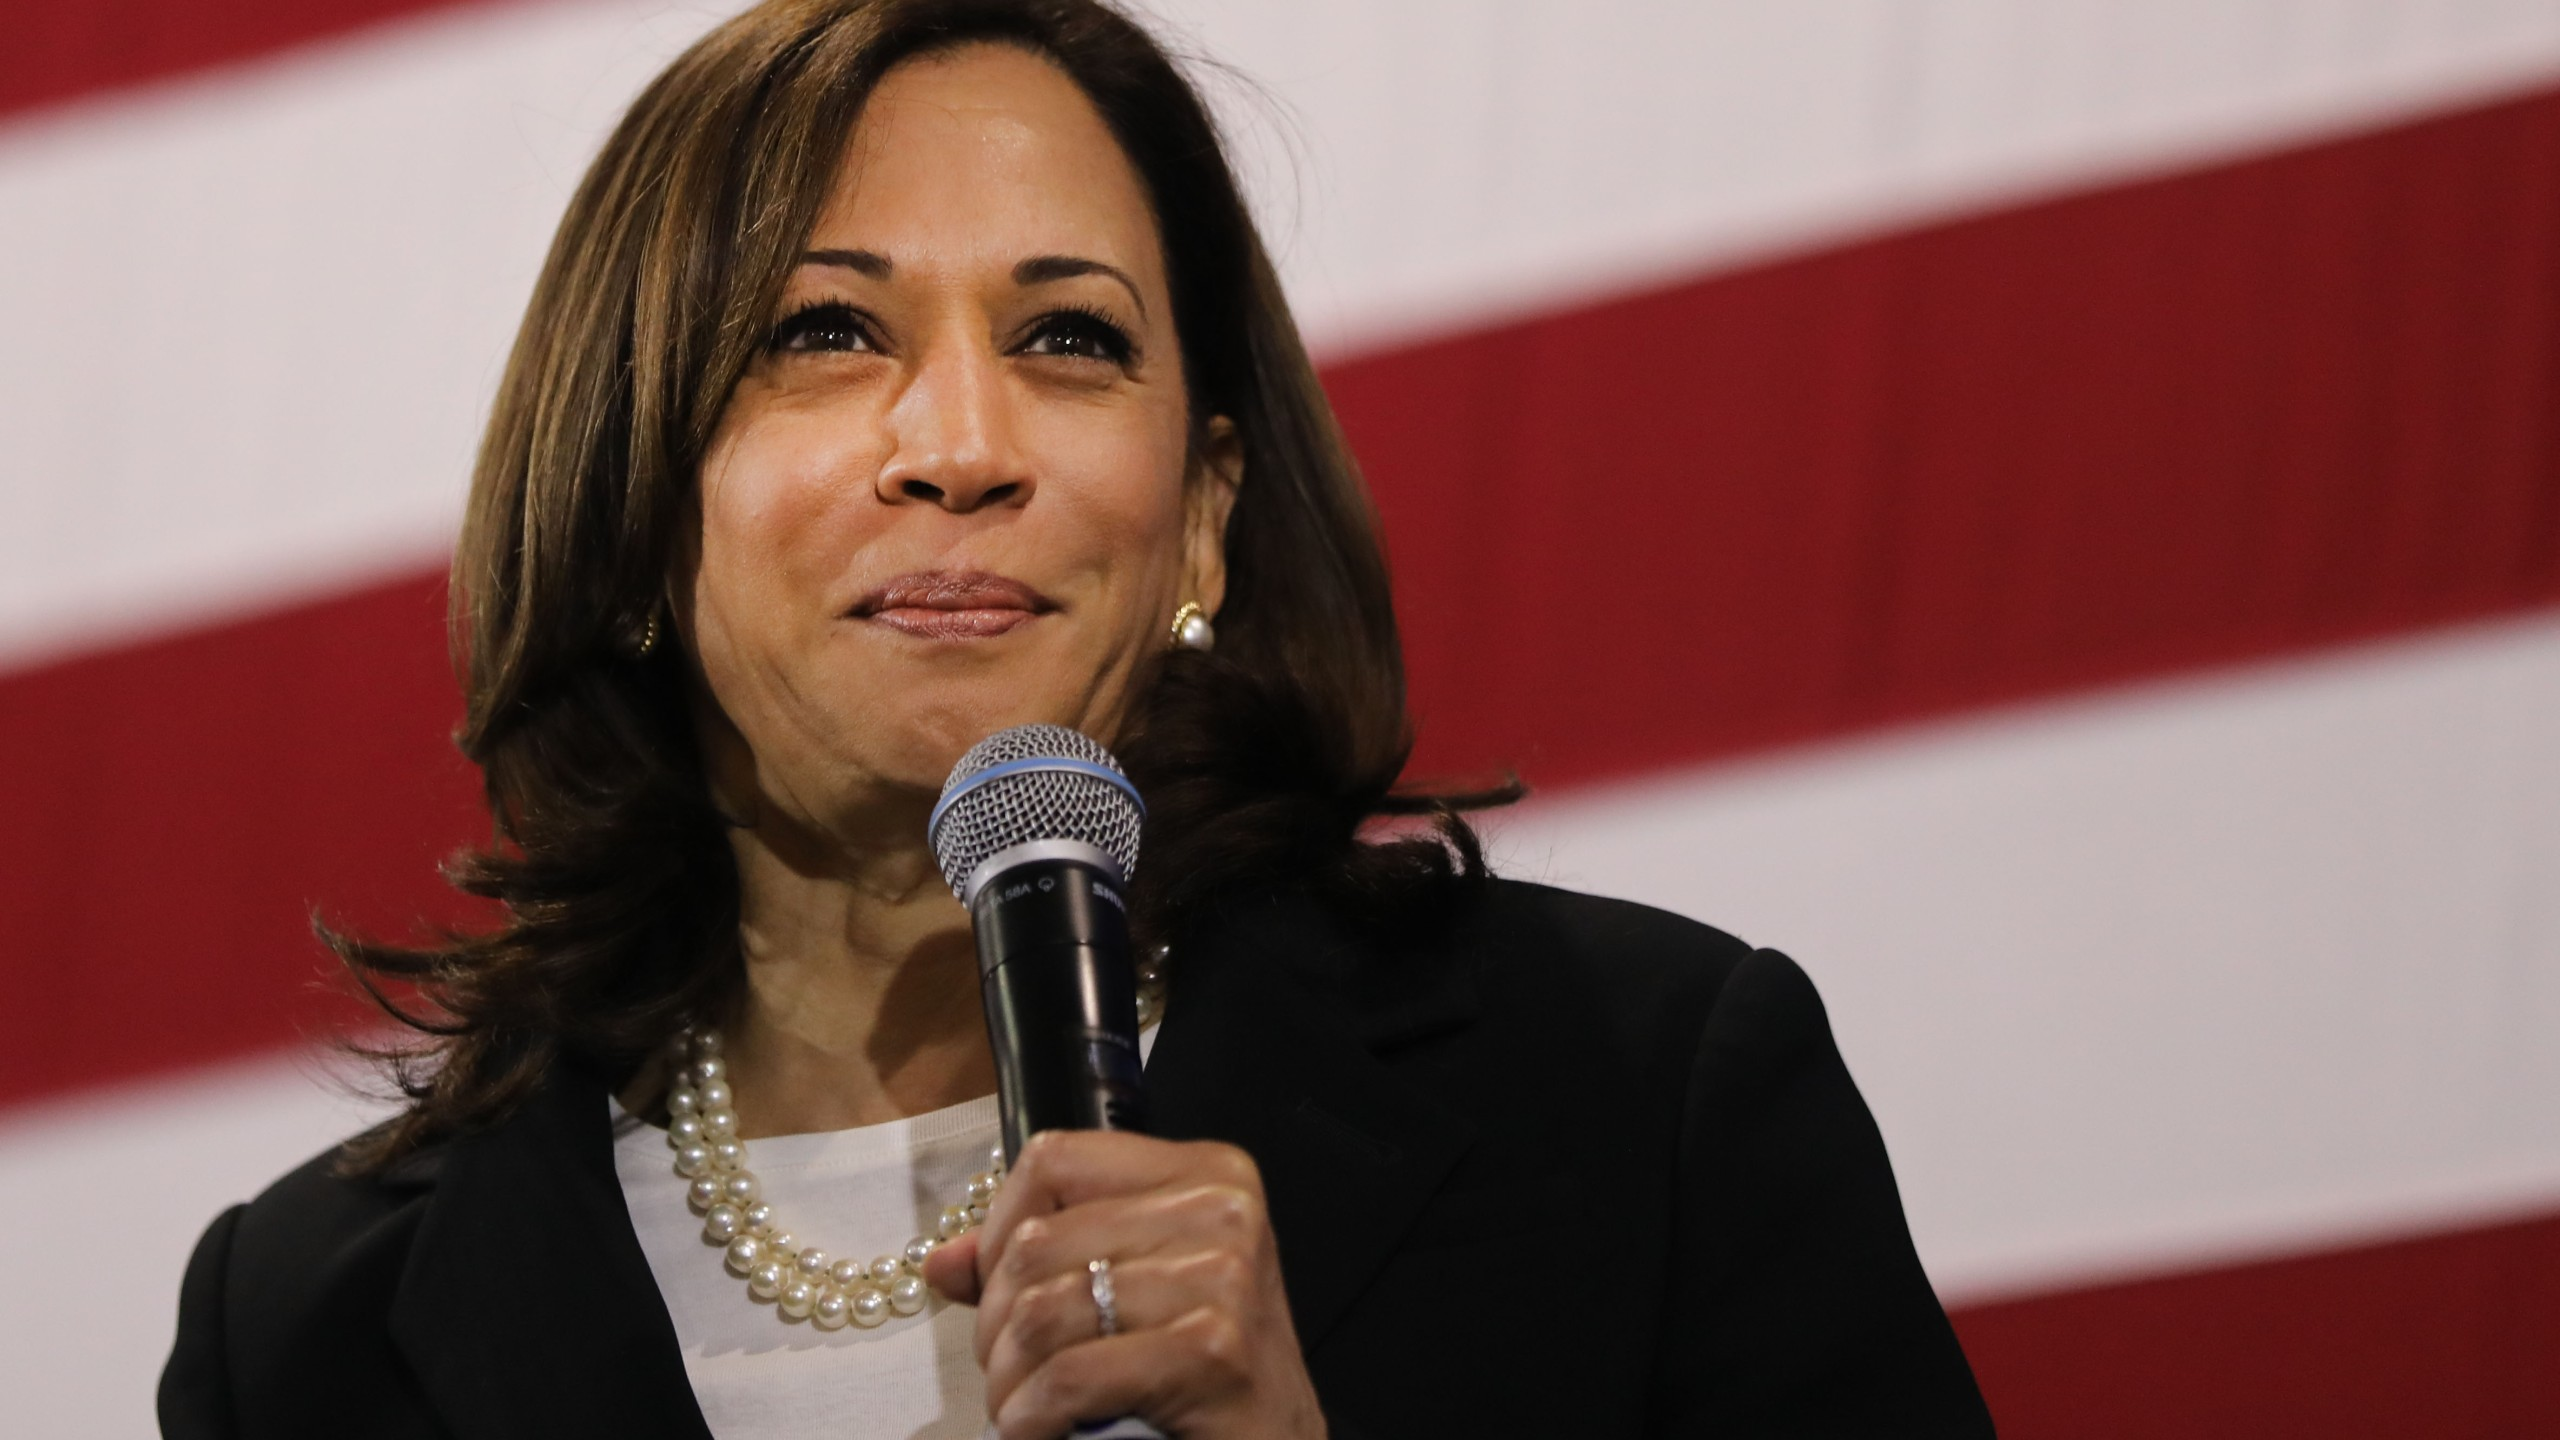 Democratic presidential candidate Sen. Kamala Harris speaks at a campaign stop in Nashua, New Hampshire, on May 15, 2019. (Credit: Spencer Platt / Getty Images)